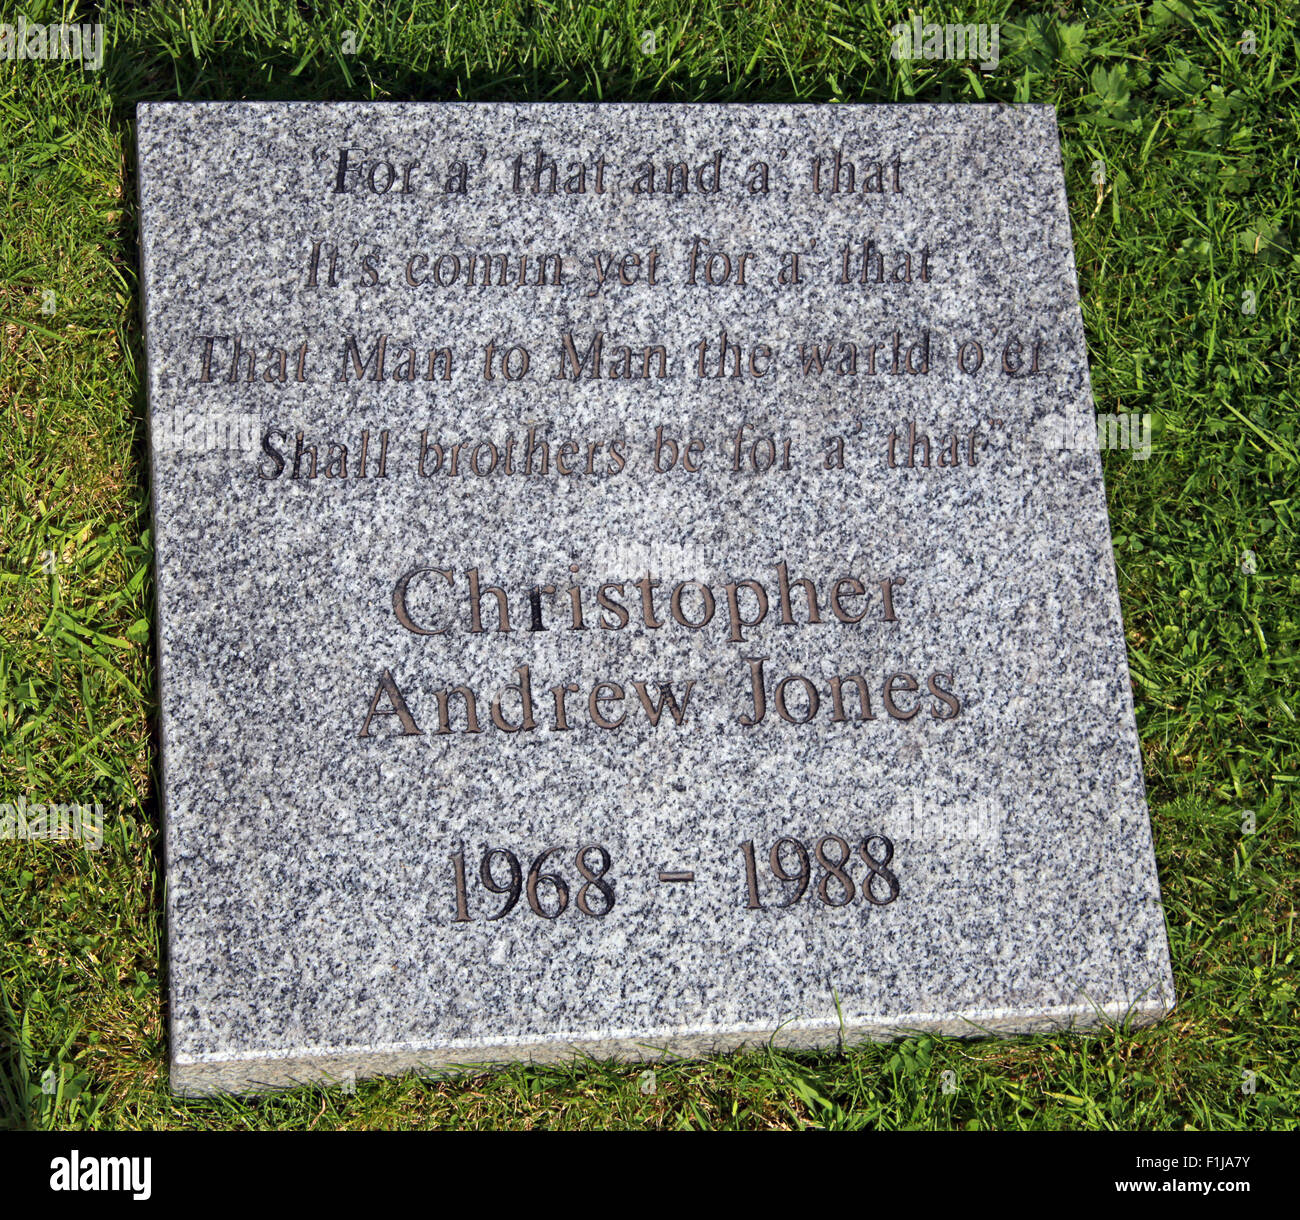 Christopher Andrew Jones,Scotland,Lodge,Visitors,Centre,DLVC,Trust,Lockerbie,Memorial,Remembrance,Scotland,Victims,Pan,Am,PanAm,flight,103,bomb,bombing,terrorist,December,1988,attack,crash,dead,site,21/12/1988,270,victims,Scottish,Town,conspiracy,blast,Tundergarth,Room,garden,of,New York,GoTonySmith,Lodge,Visitors,Centre,DLVC,Trust,Lockerbie,Memorial,Scotland,Victims,Pan,Am,PanAm,flight,103,bomb,bombing,terrorist,December,1988,attack,crash,dead,site,21/12/1988,270,victims,Scottish,Town,conspiracy,blast,Tundergarth,Room,garden,of,Dryfesdale,Cemetery,news,Cultural,understanding,remembering,innocent,transatlantic,Frankfurt,Detroit,Libyan,Libya,Colonel Muammar Gaddafi,civil,case,compensation,terrorism,PA103,30,30years,years,Syracuse,University,SU,family,collections,Story,Archive,Archives,40,35,Timeline,saga,disaster,air,Scholars,program,programs,remembrance,Clipper Maid of the Seas,N739PA,Boeing,727,plane,aircraft,Scotland,UK,United Kingdom,GB,Great Britain,resting,place,Buy Pictures of,Buy Images Of,New York,al megrahi,30 Years